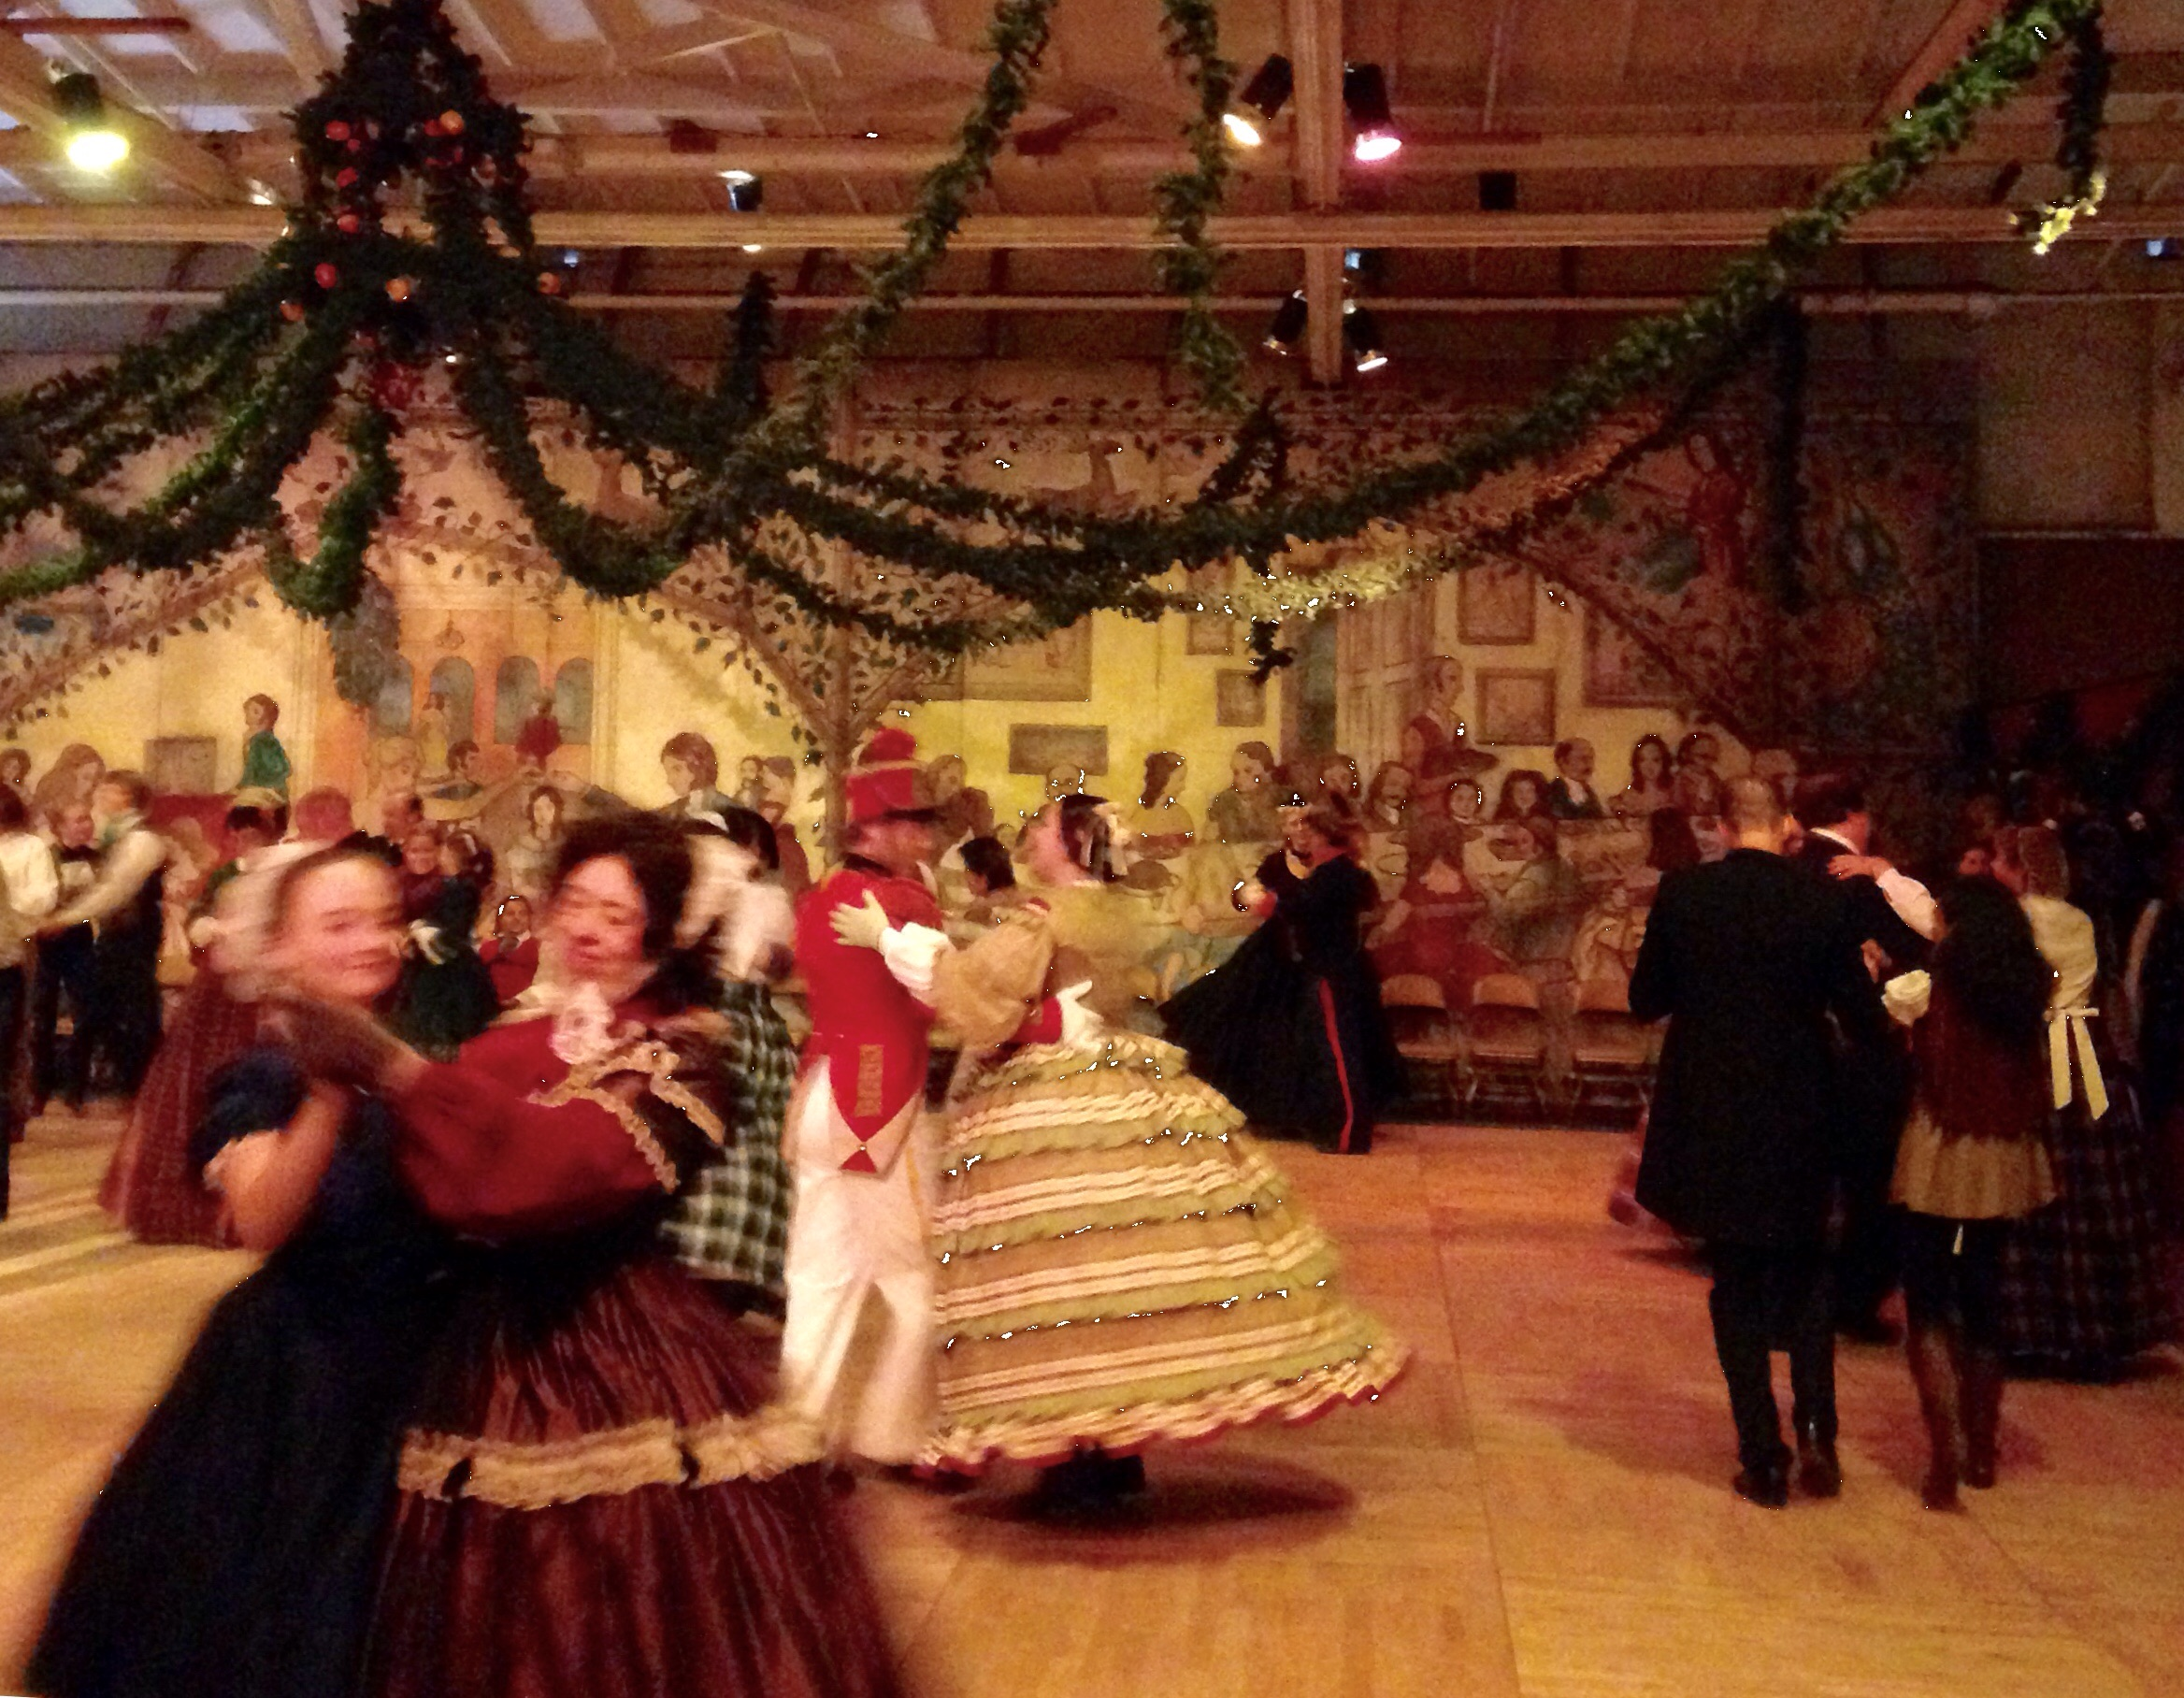 Waltzing in Fezziwig's warehouse